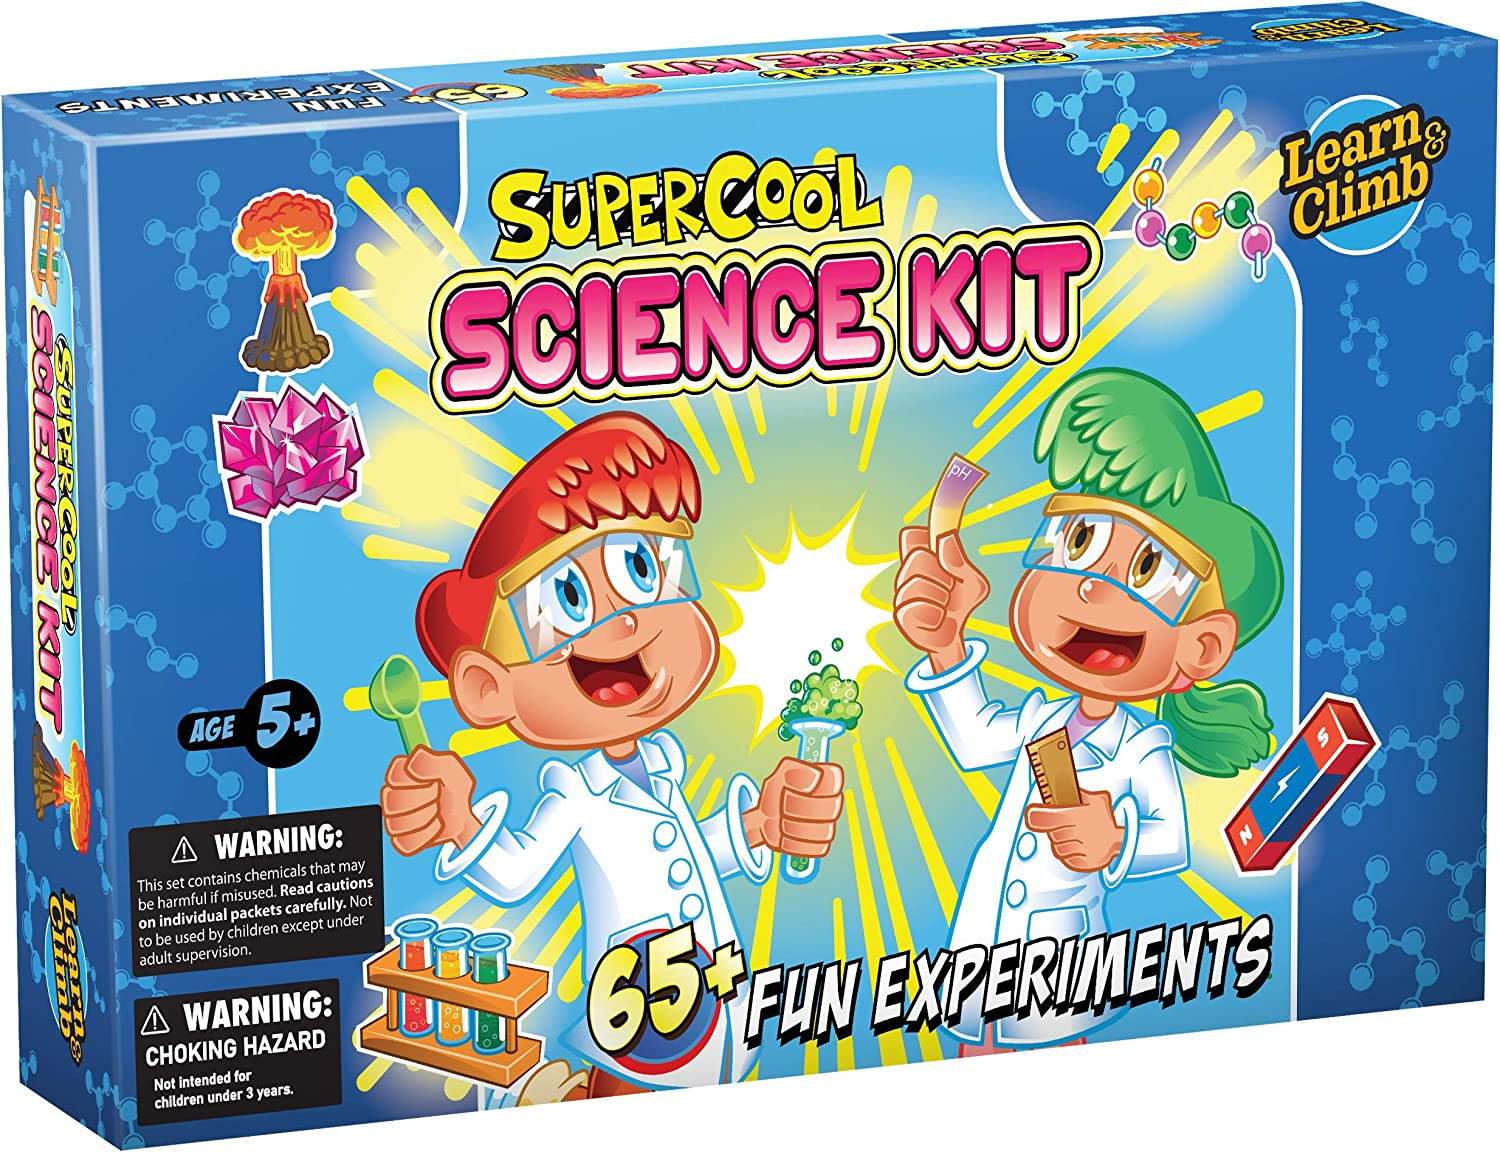 Learn & Climb Science Kit for Kids - Set Includes Over 65 Science Experiments + Scientist Name tag!